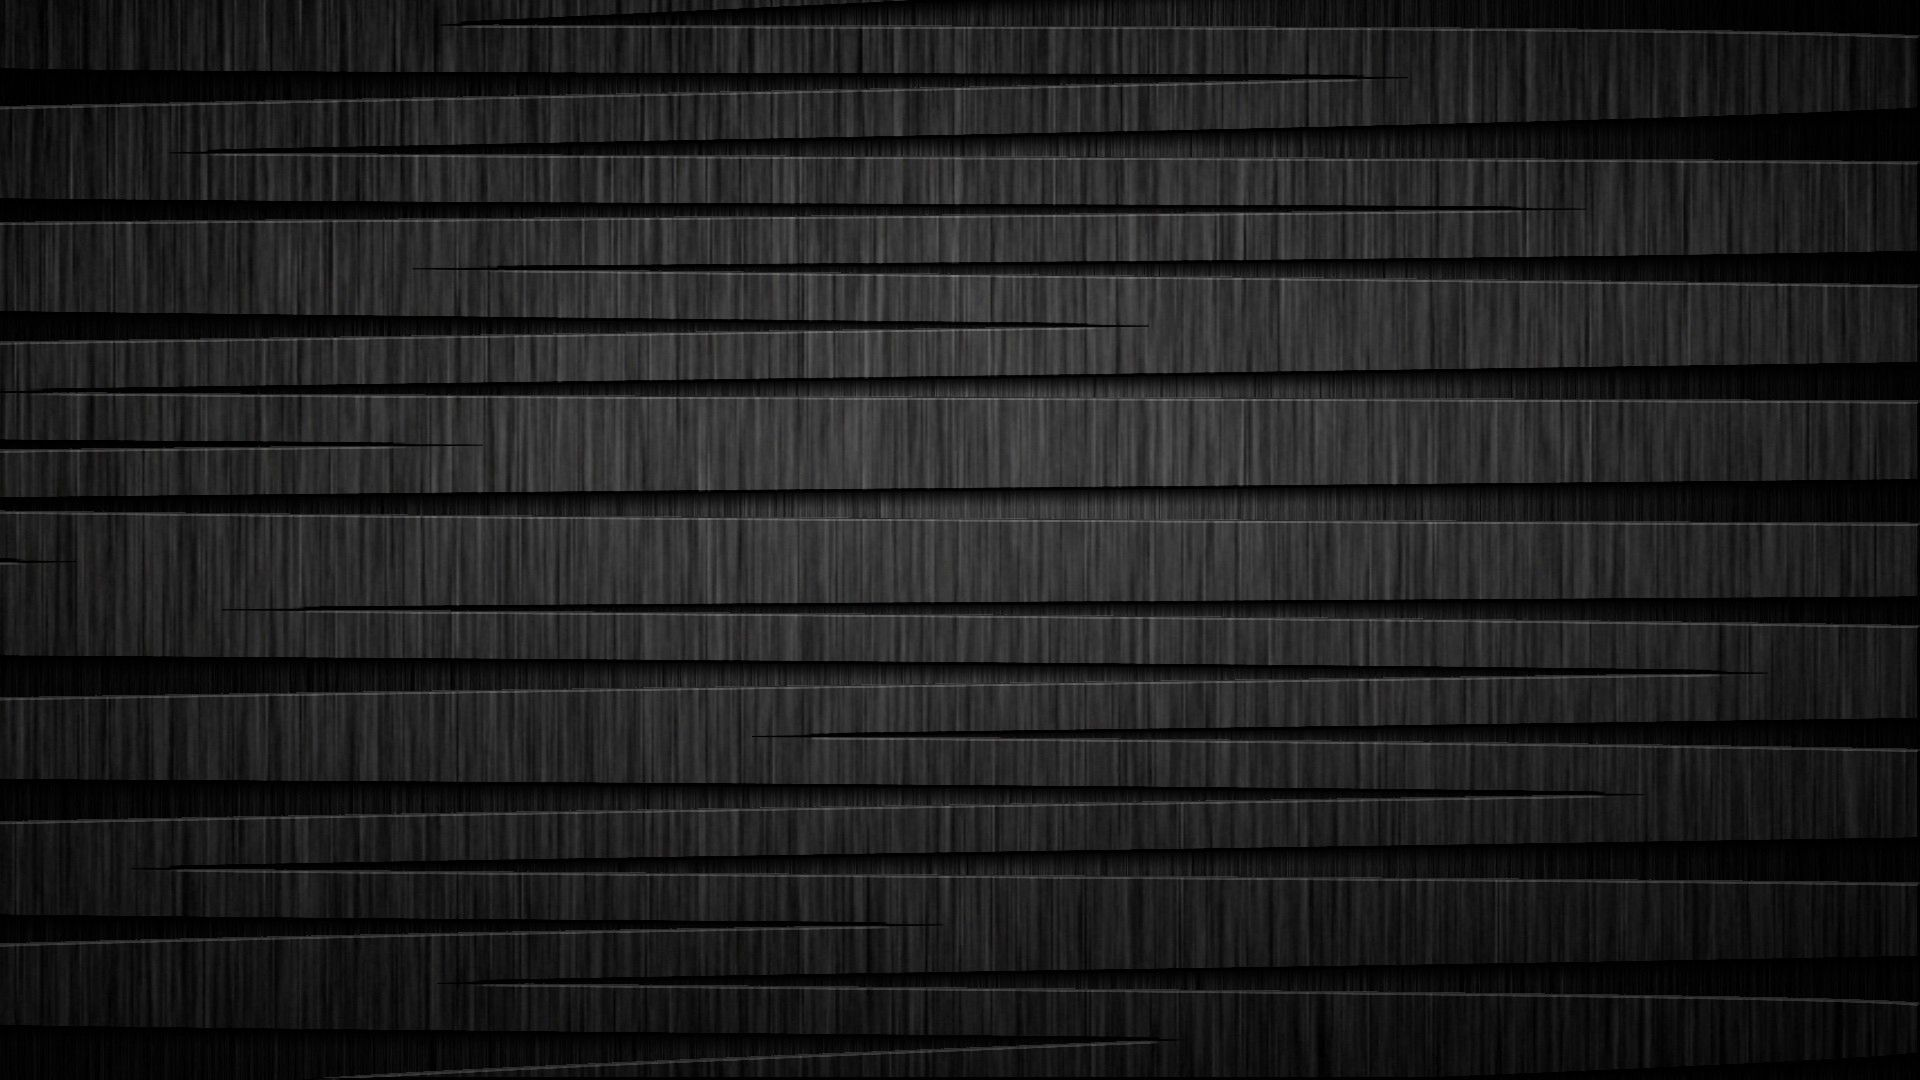 Wall With Streaks 1920x1080 Black Textured Wallpaper Textured Wallpaper Black Abstract Background